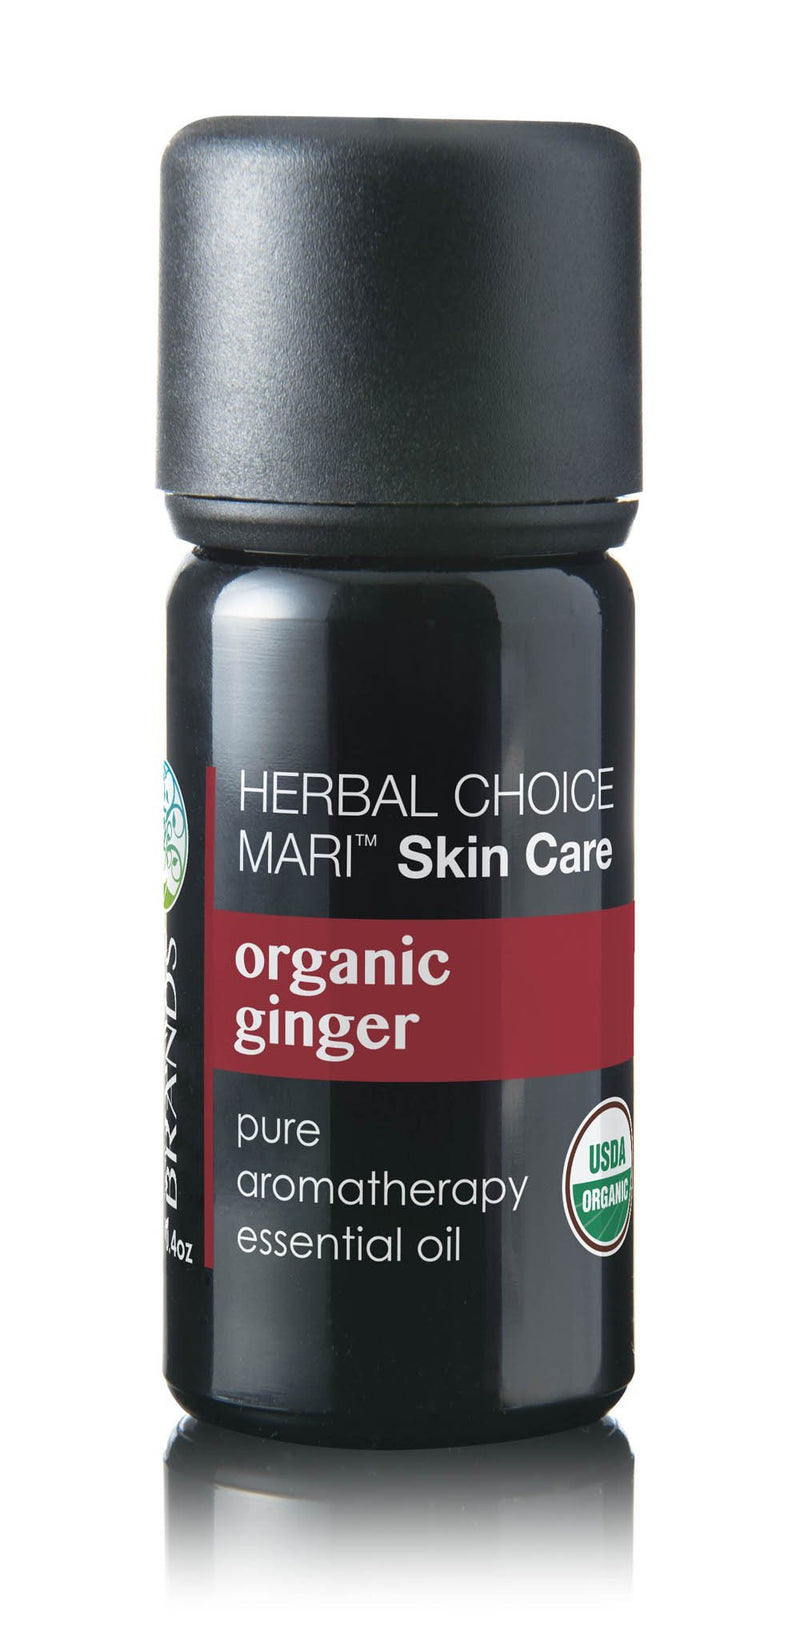 Herbal Choice Mari Organic Ginger Essential Oil; 0.3floz Glass - Herbal Choice Mari Organic Ginger Essential Oil; 0.3floz Glass - Herbal Choice Mari Organic Ginger Essential Oil; 0.3floz Glass